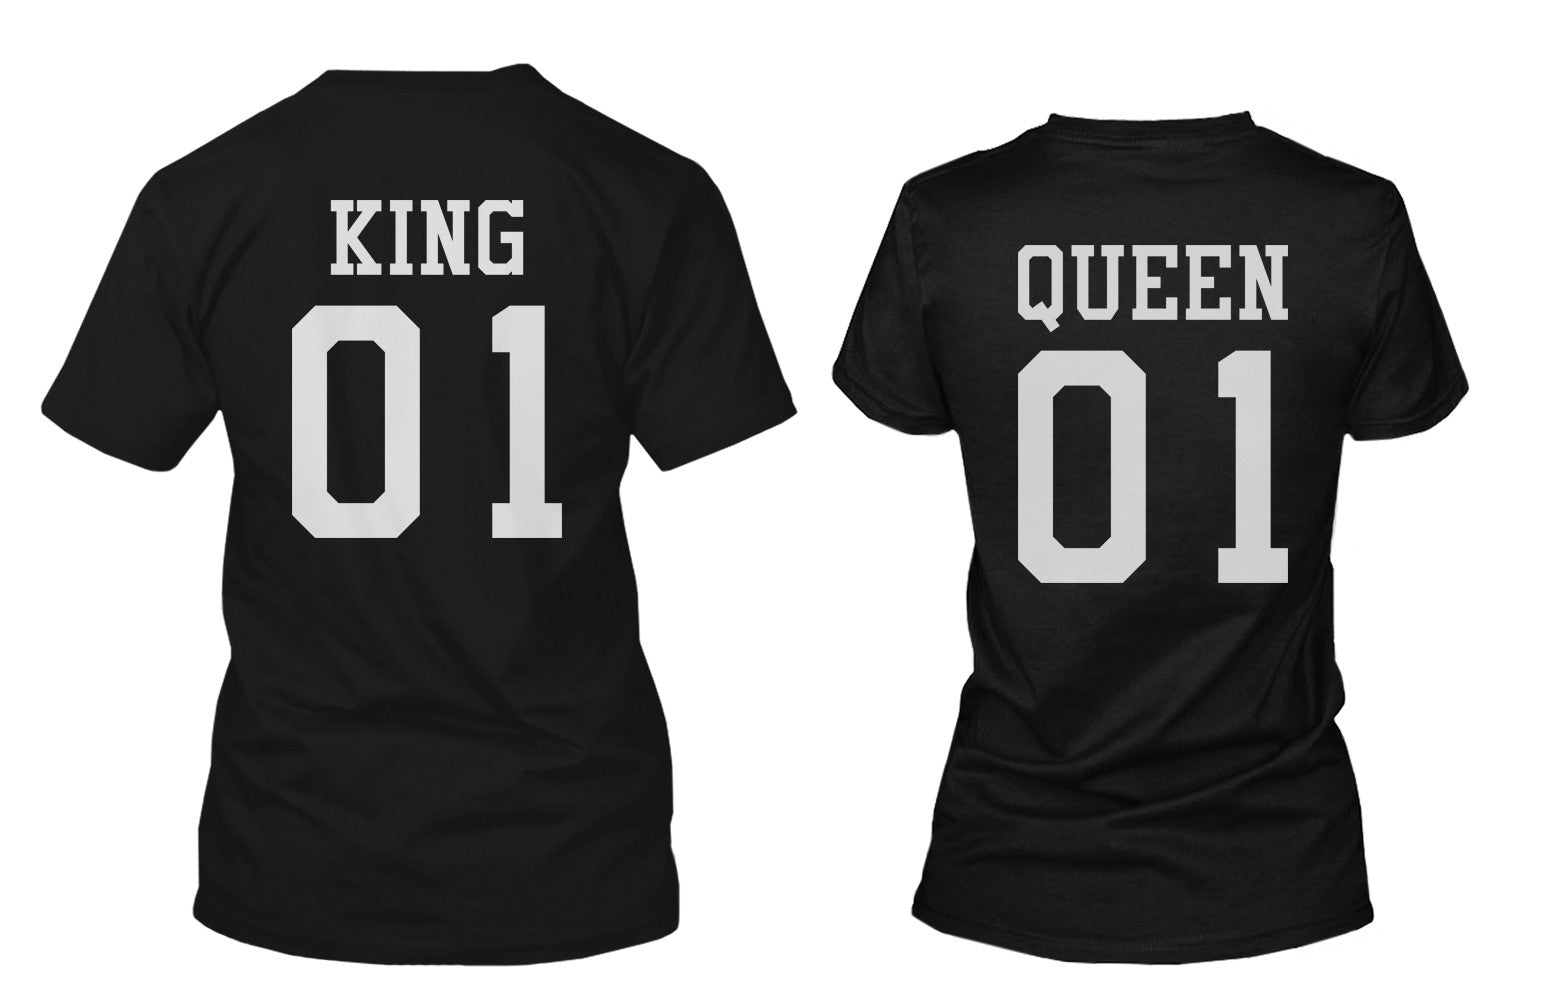 ed0917b20b King 01 and Queen 01 Back Print Couple Matching T-Shirts Valentine's ...